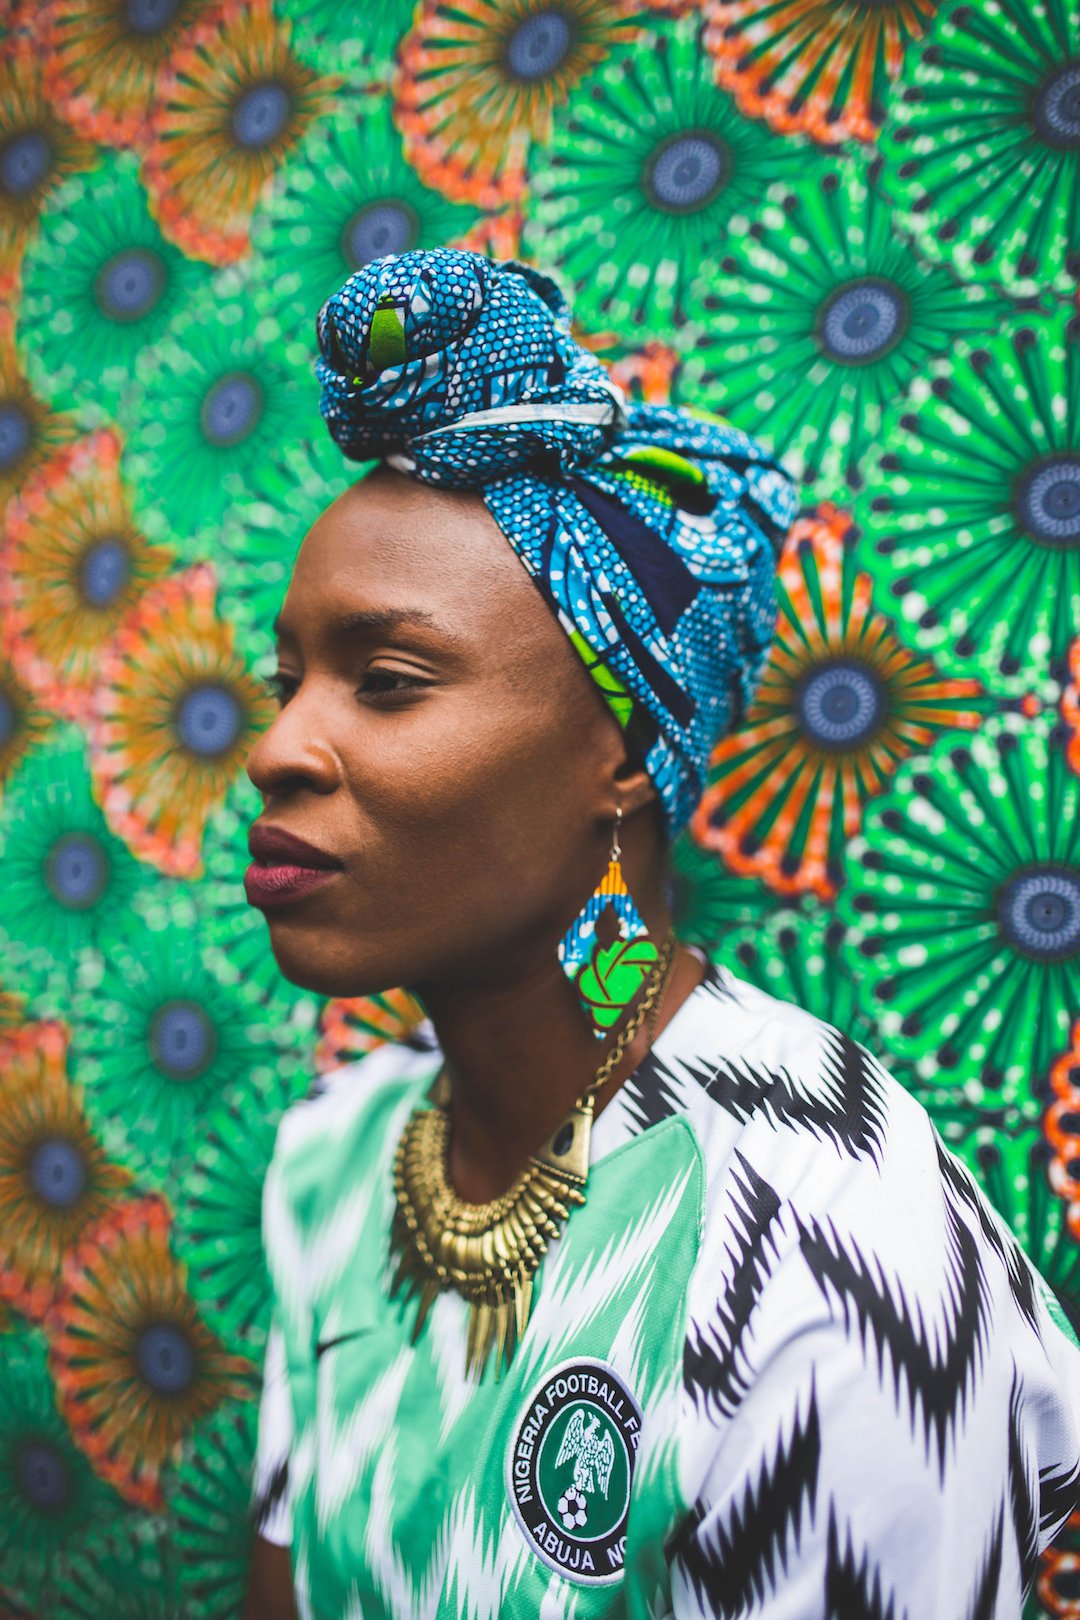 'Nigeria' photography by Dami Khadijah